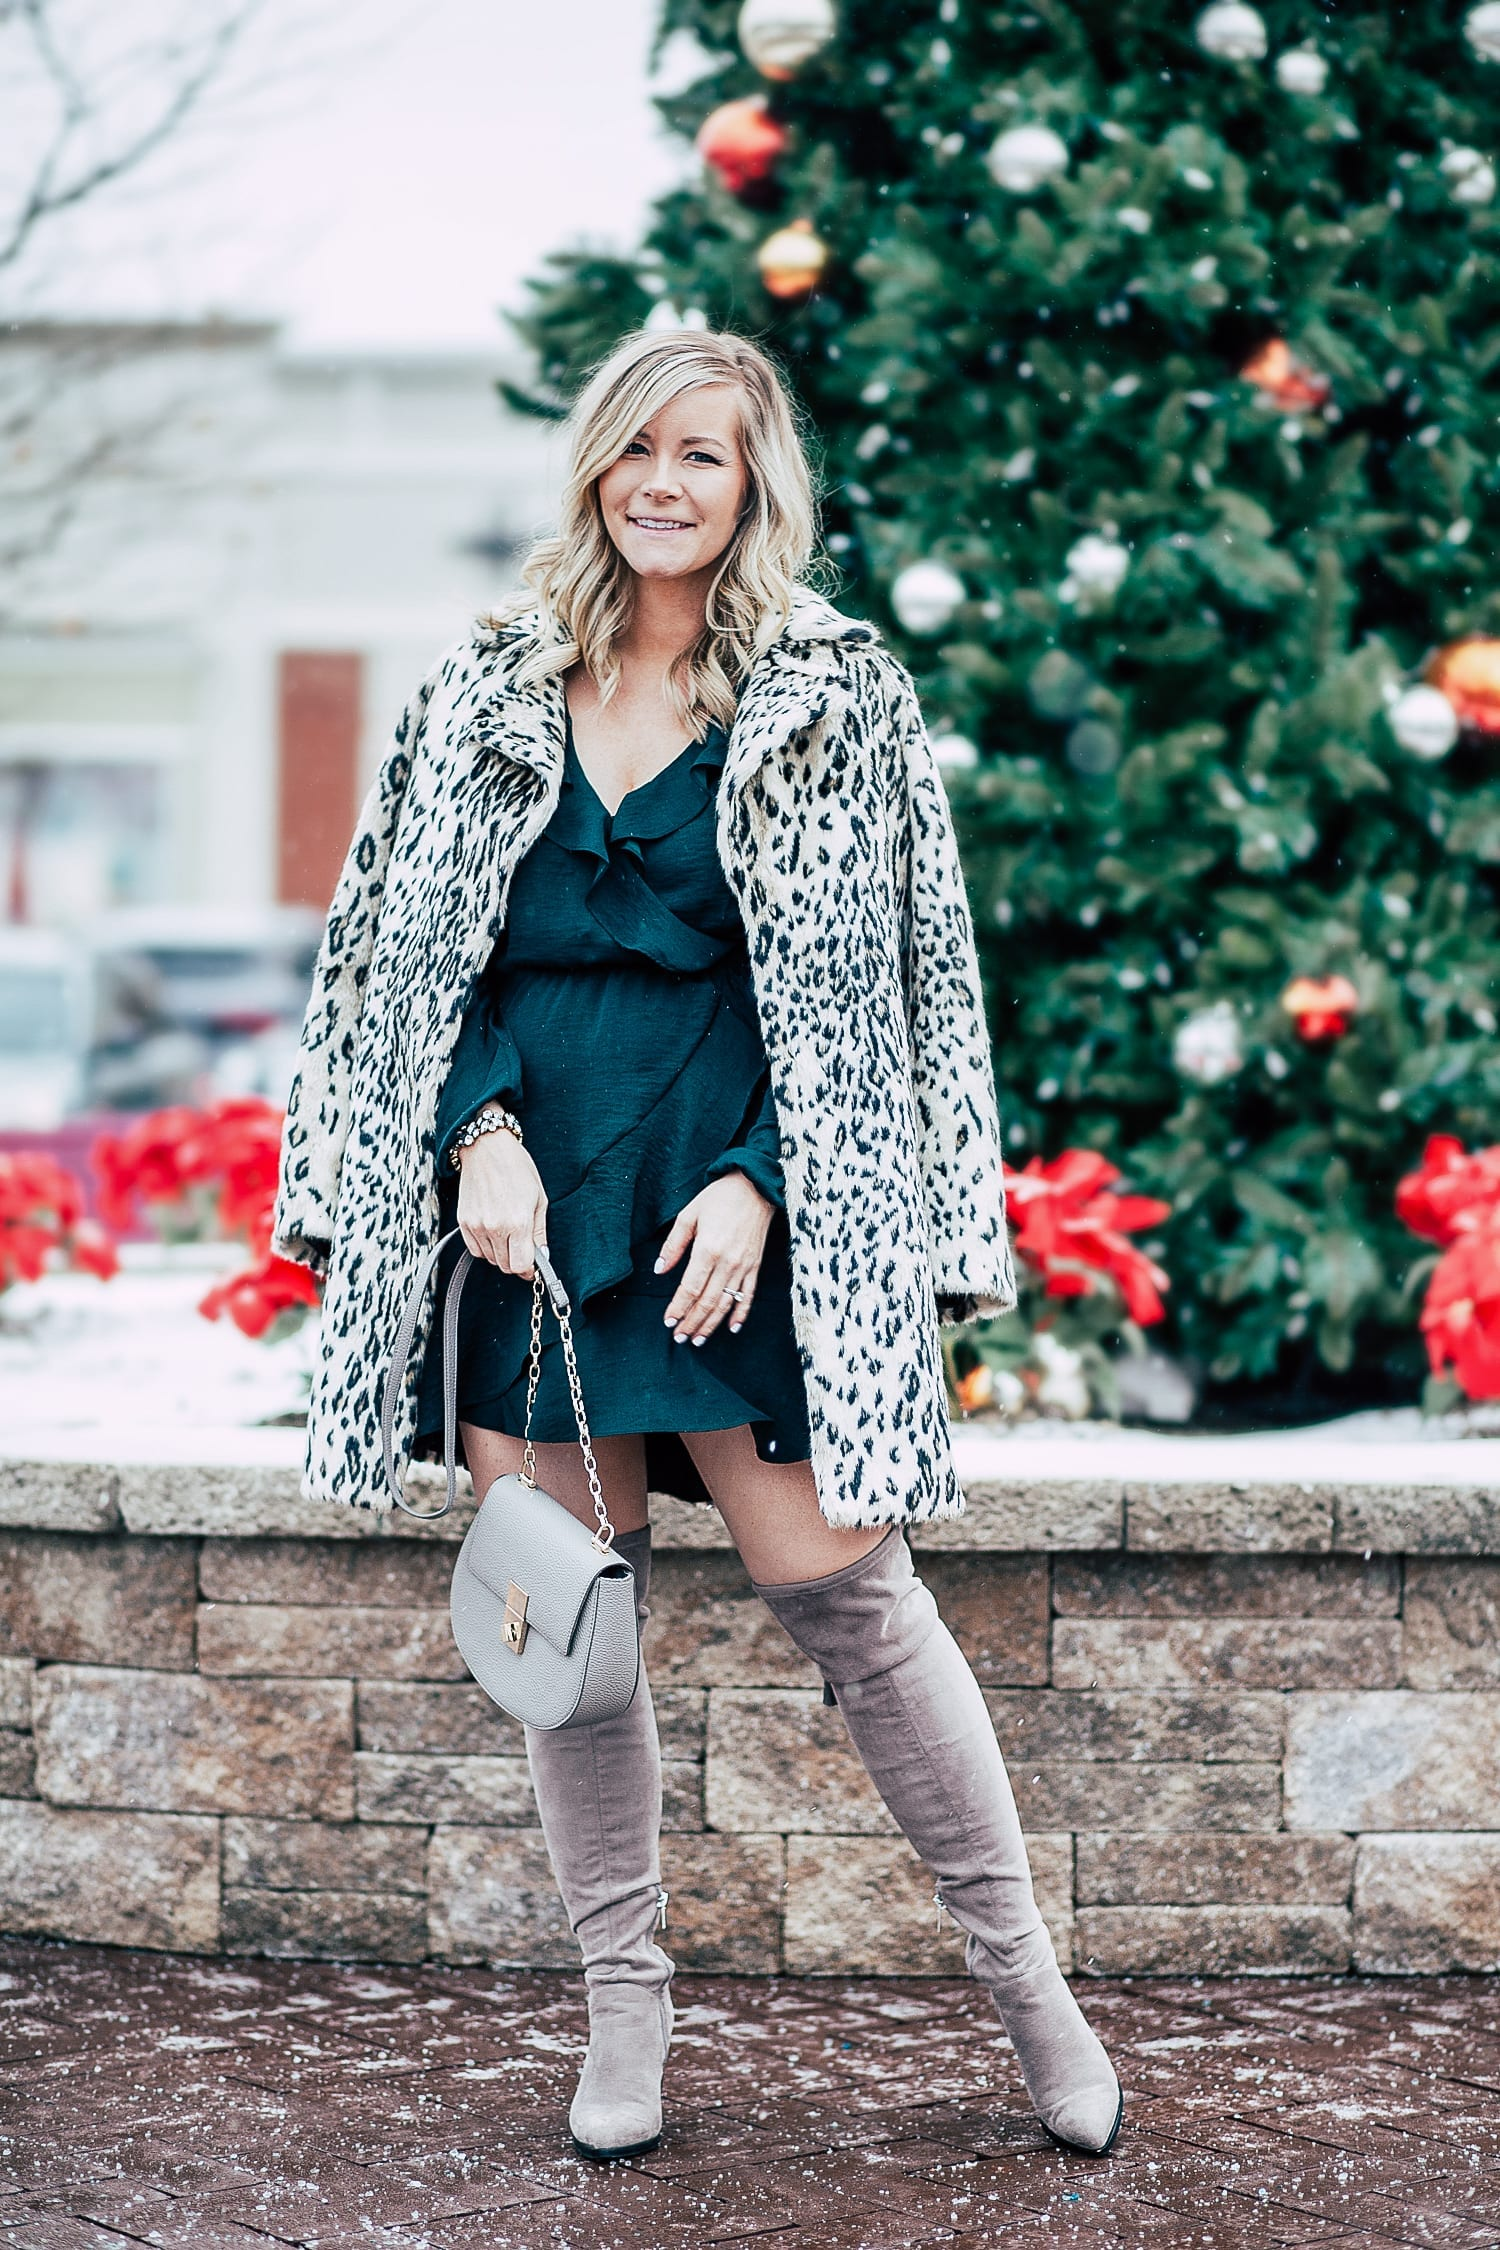 Holiday Party Outfit Ideas + $1000 Gift Card Giveaway